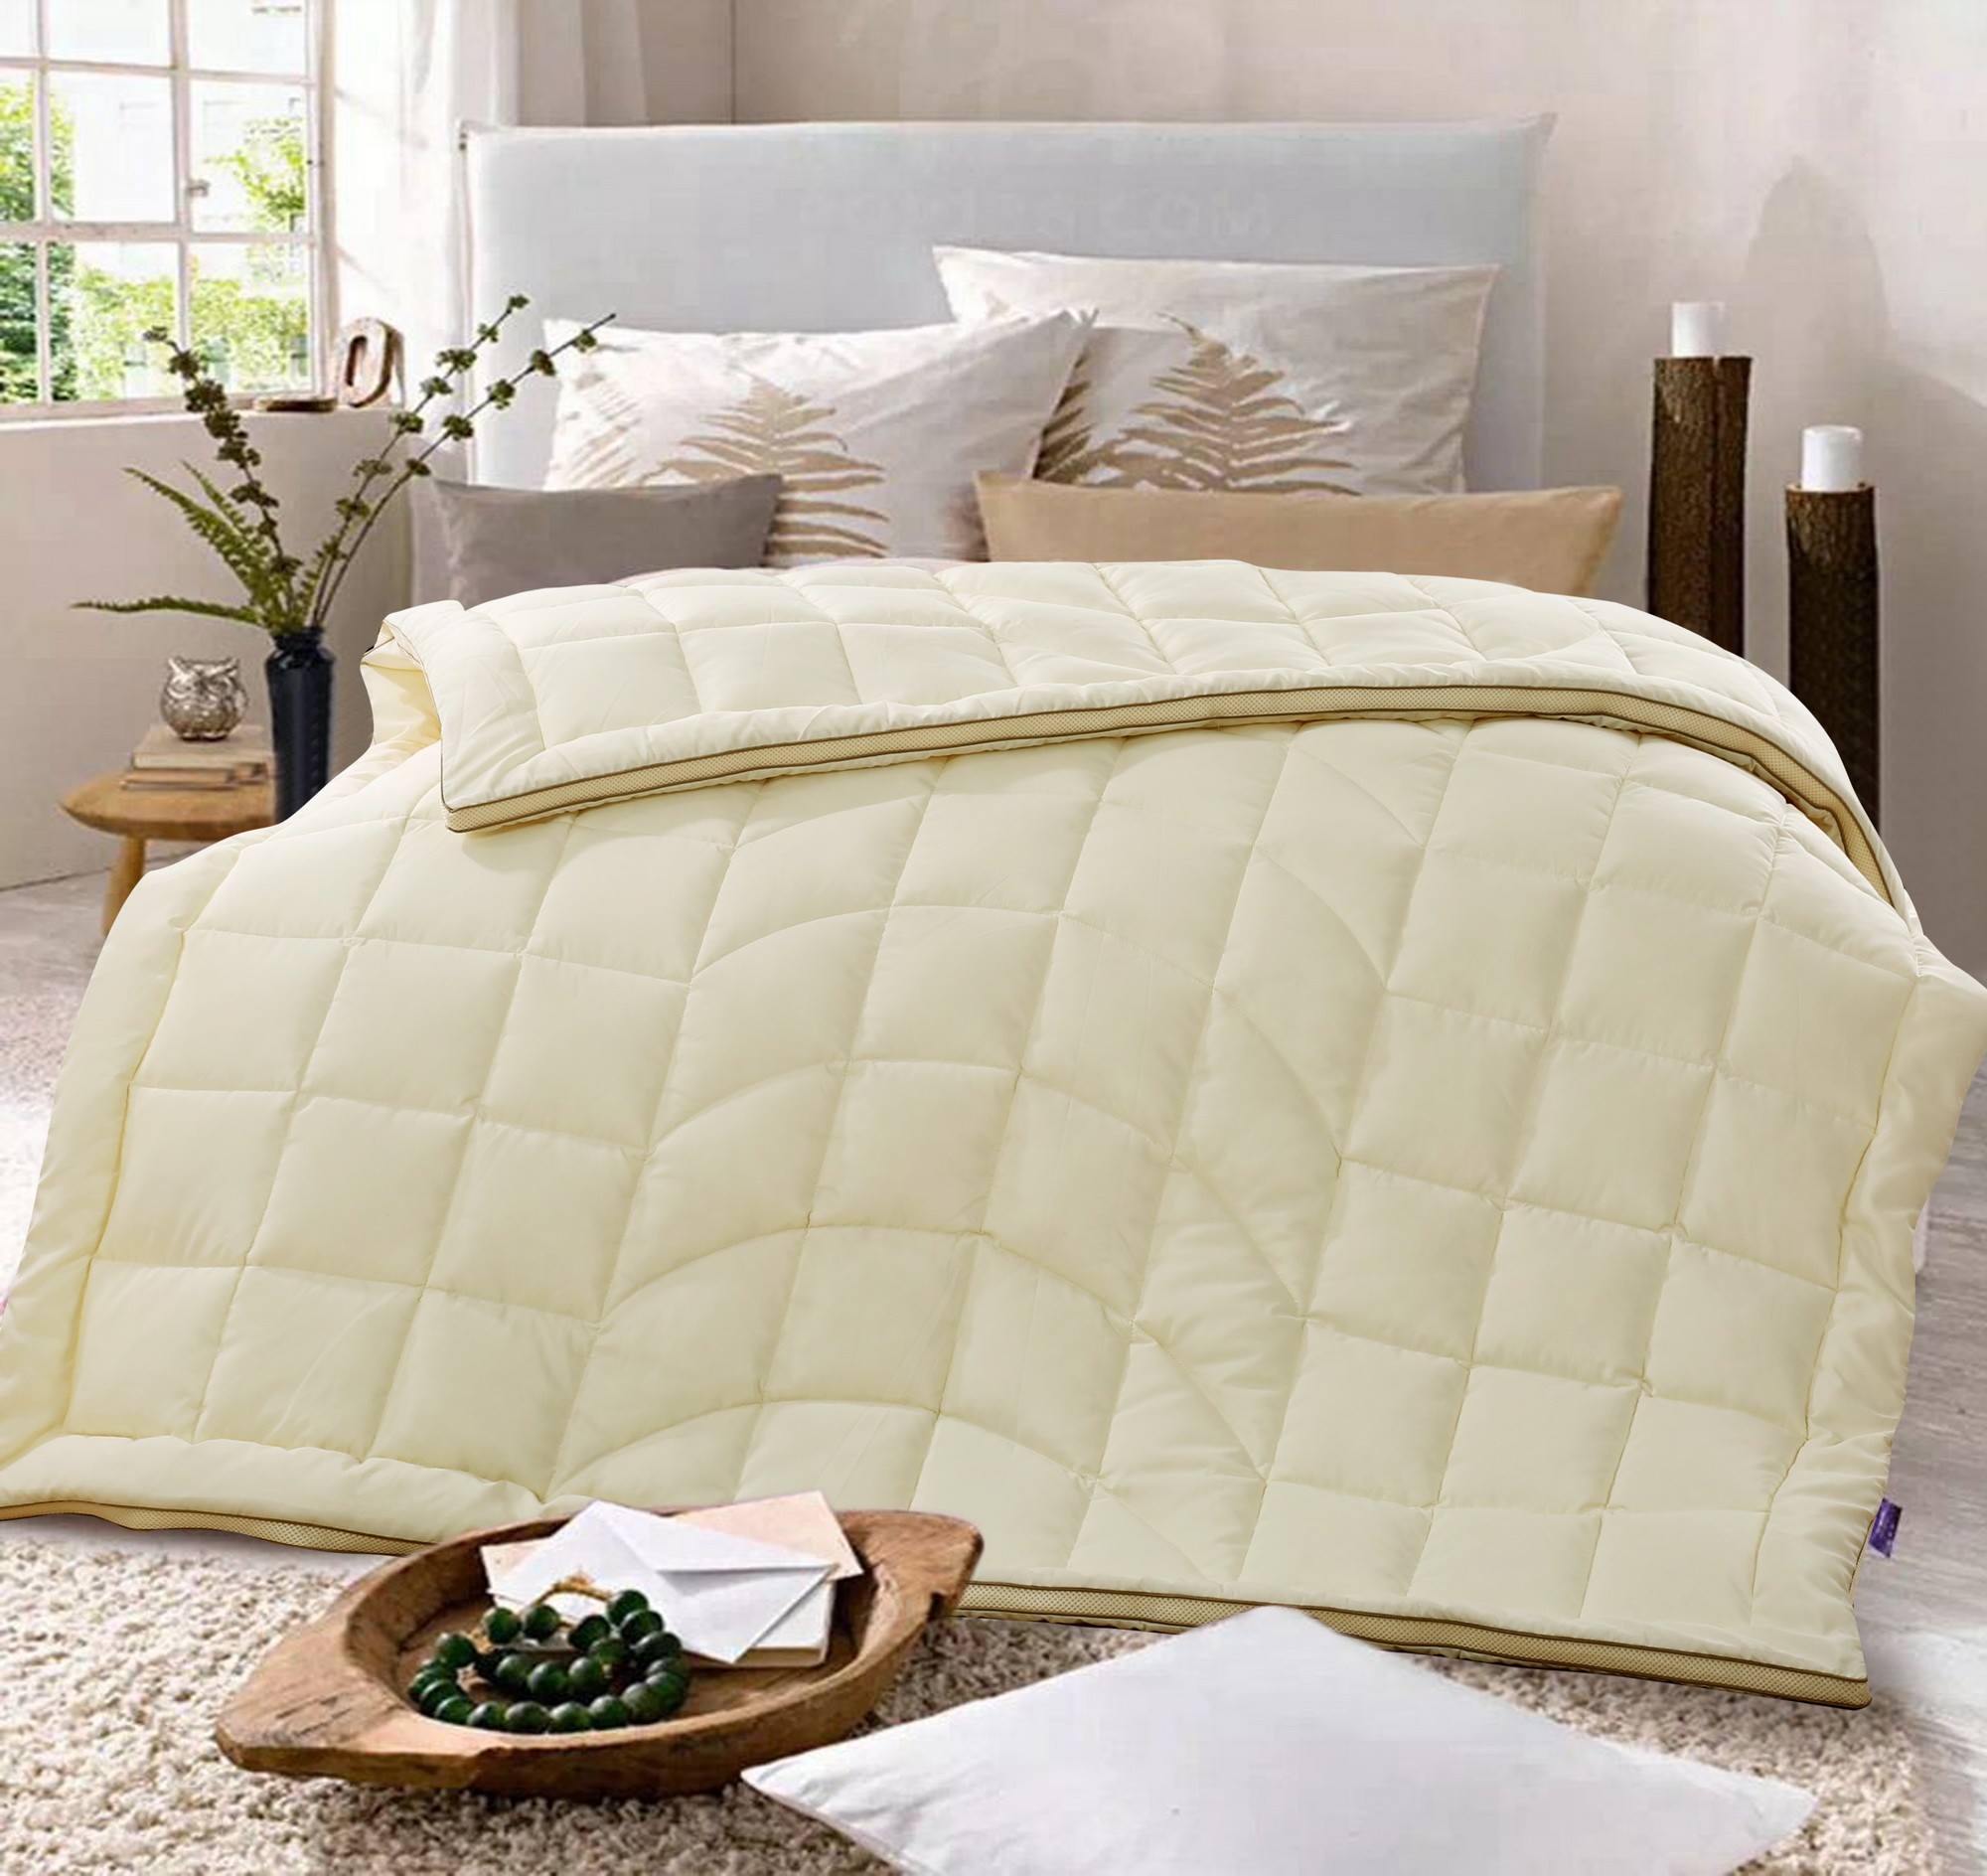 GOLDWOLKE Artificial Down Quilt King Size